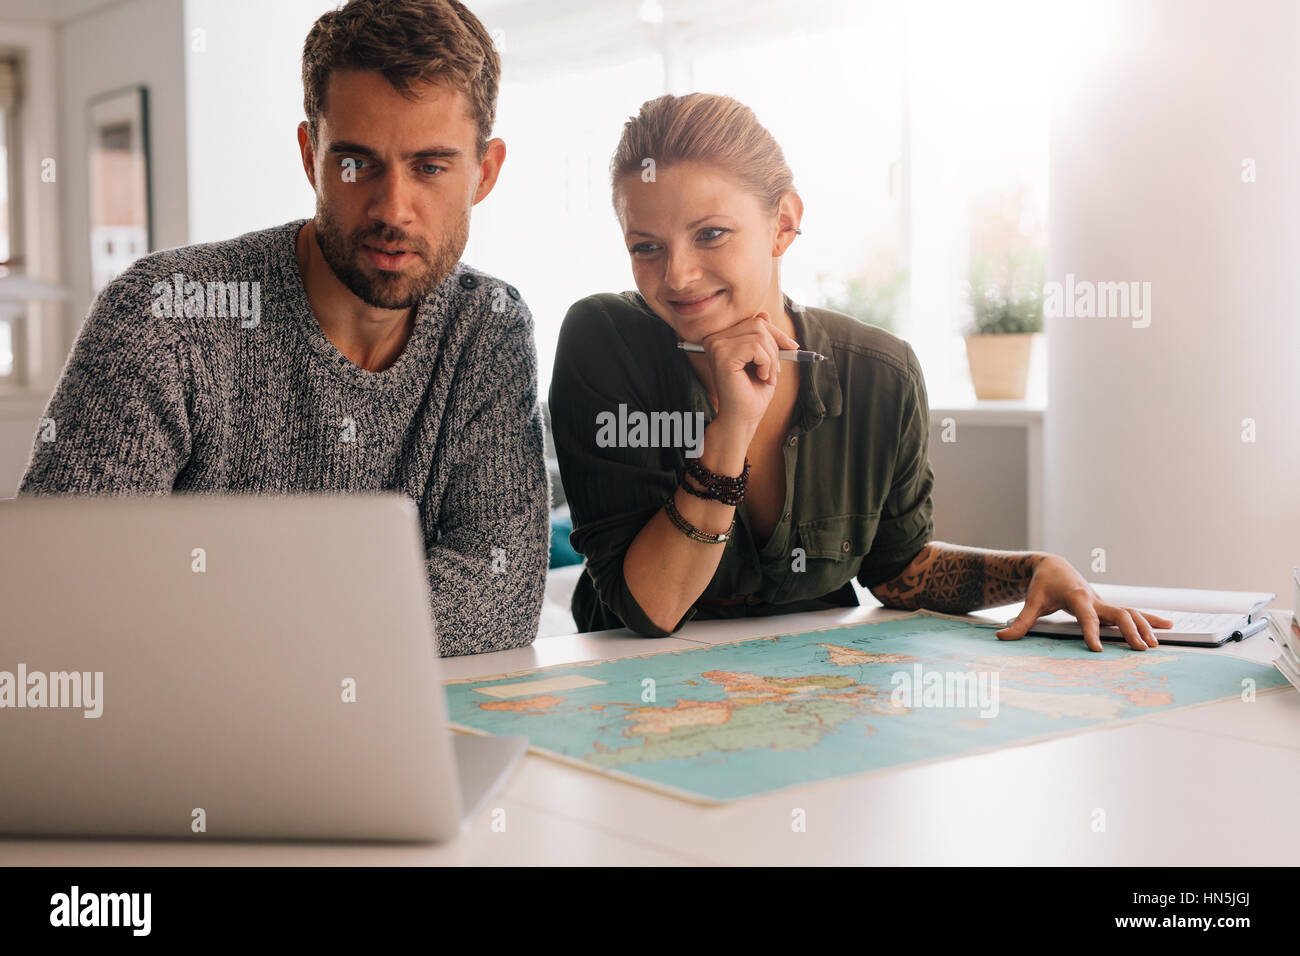 Young man and woman looking at laptop computer with world map in front. Couple using technology to explore the world. - Stock Image